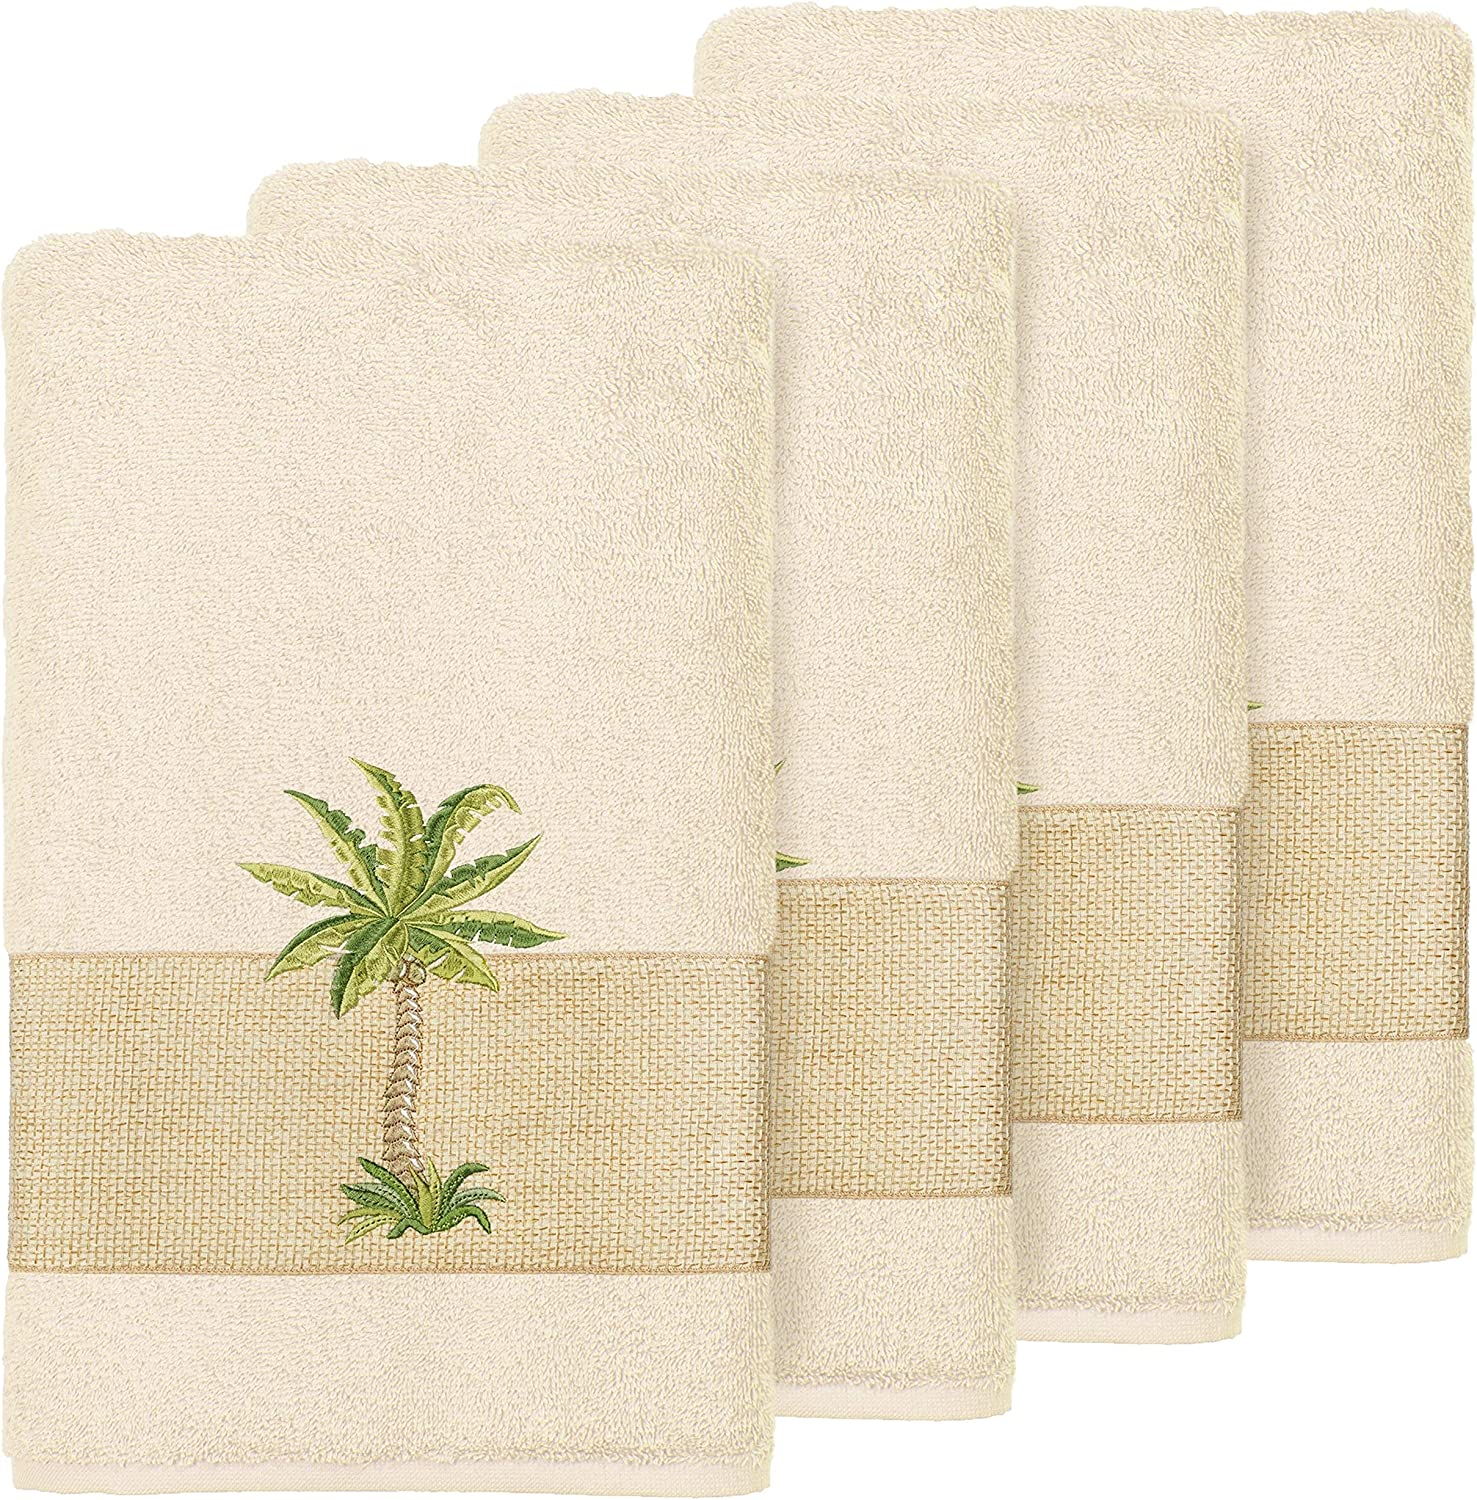 Turkish Cotton Max 40% OFF Palm Tree Embroidered Cream Hand High order 4 of Towels Set